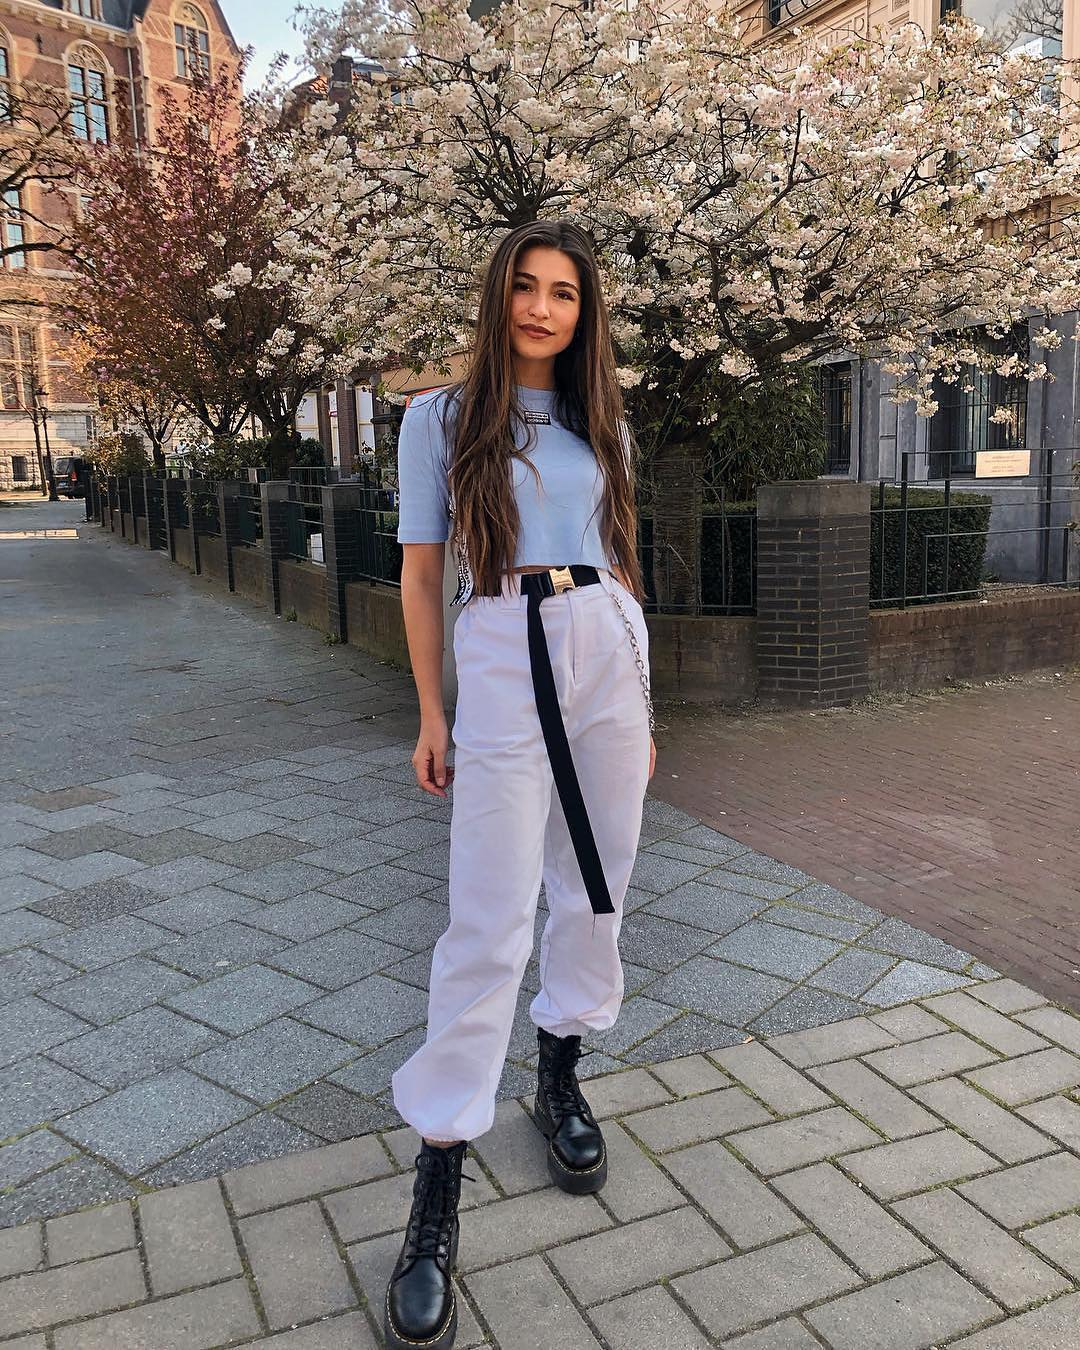 Pastel blue top with white sweatpants and black combat boots for summer 2021